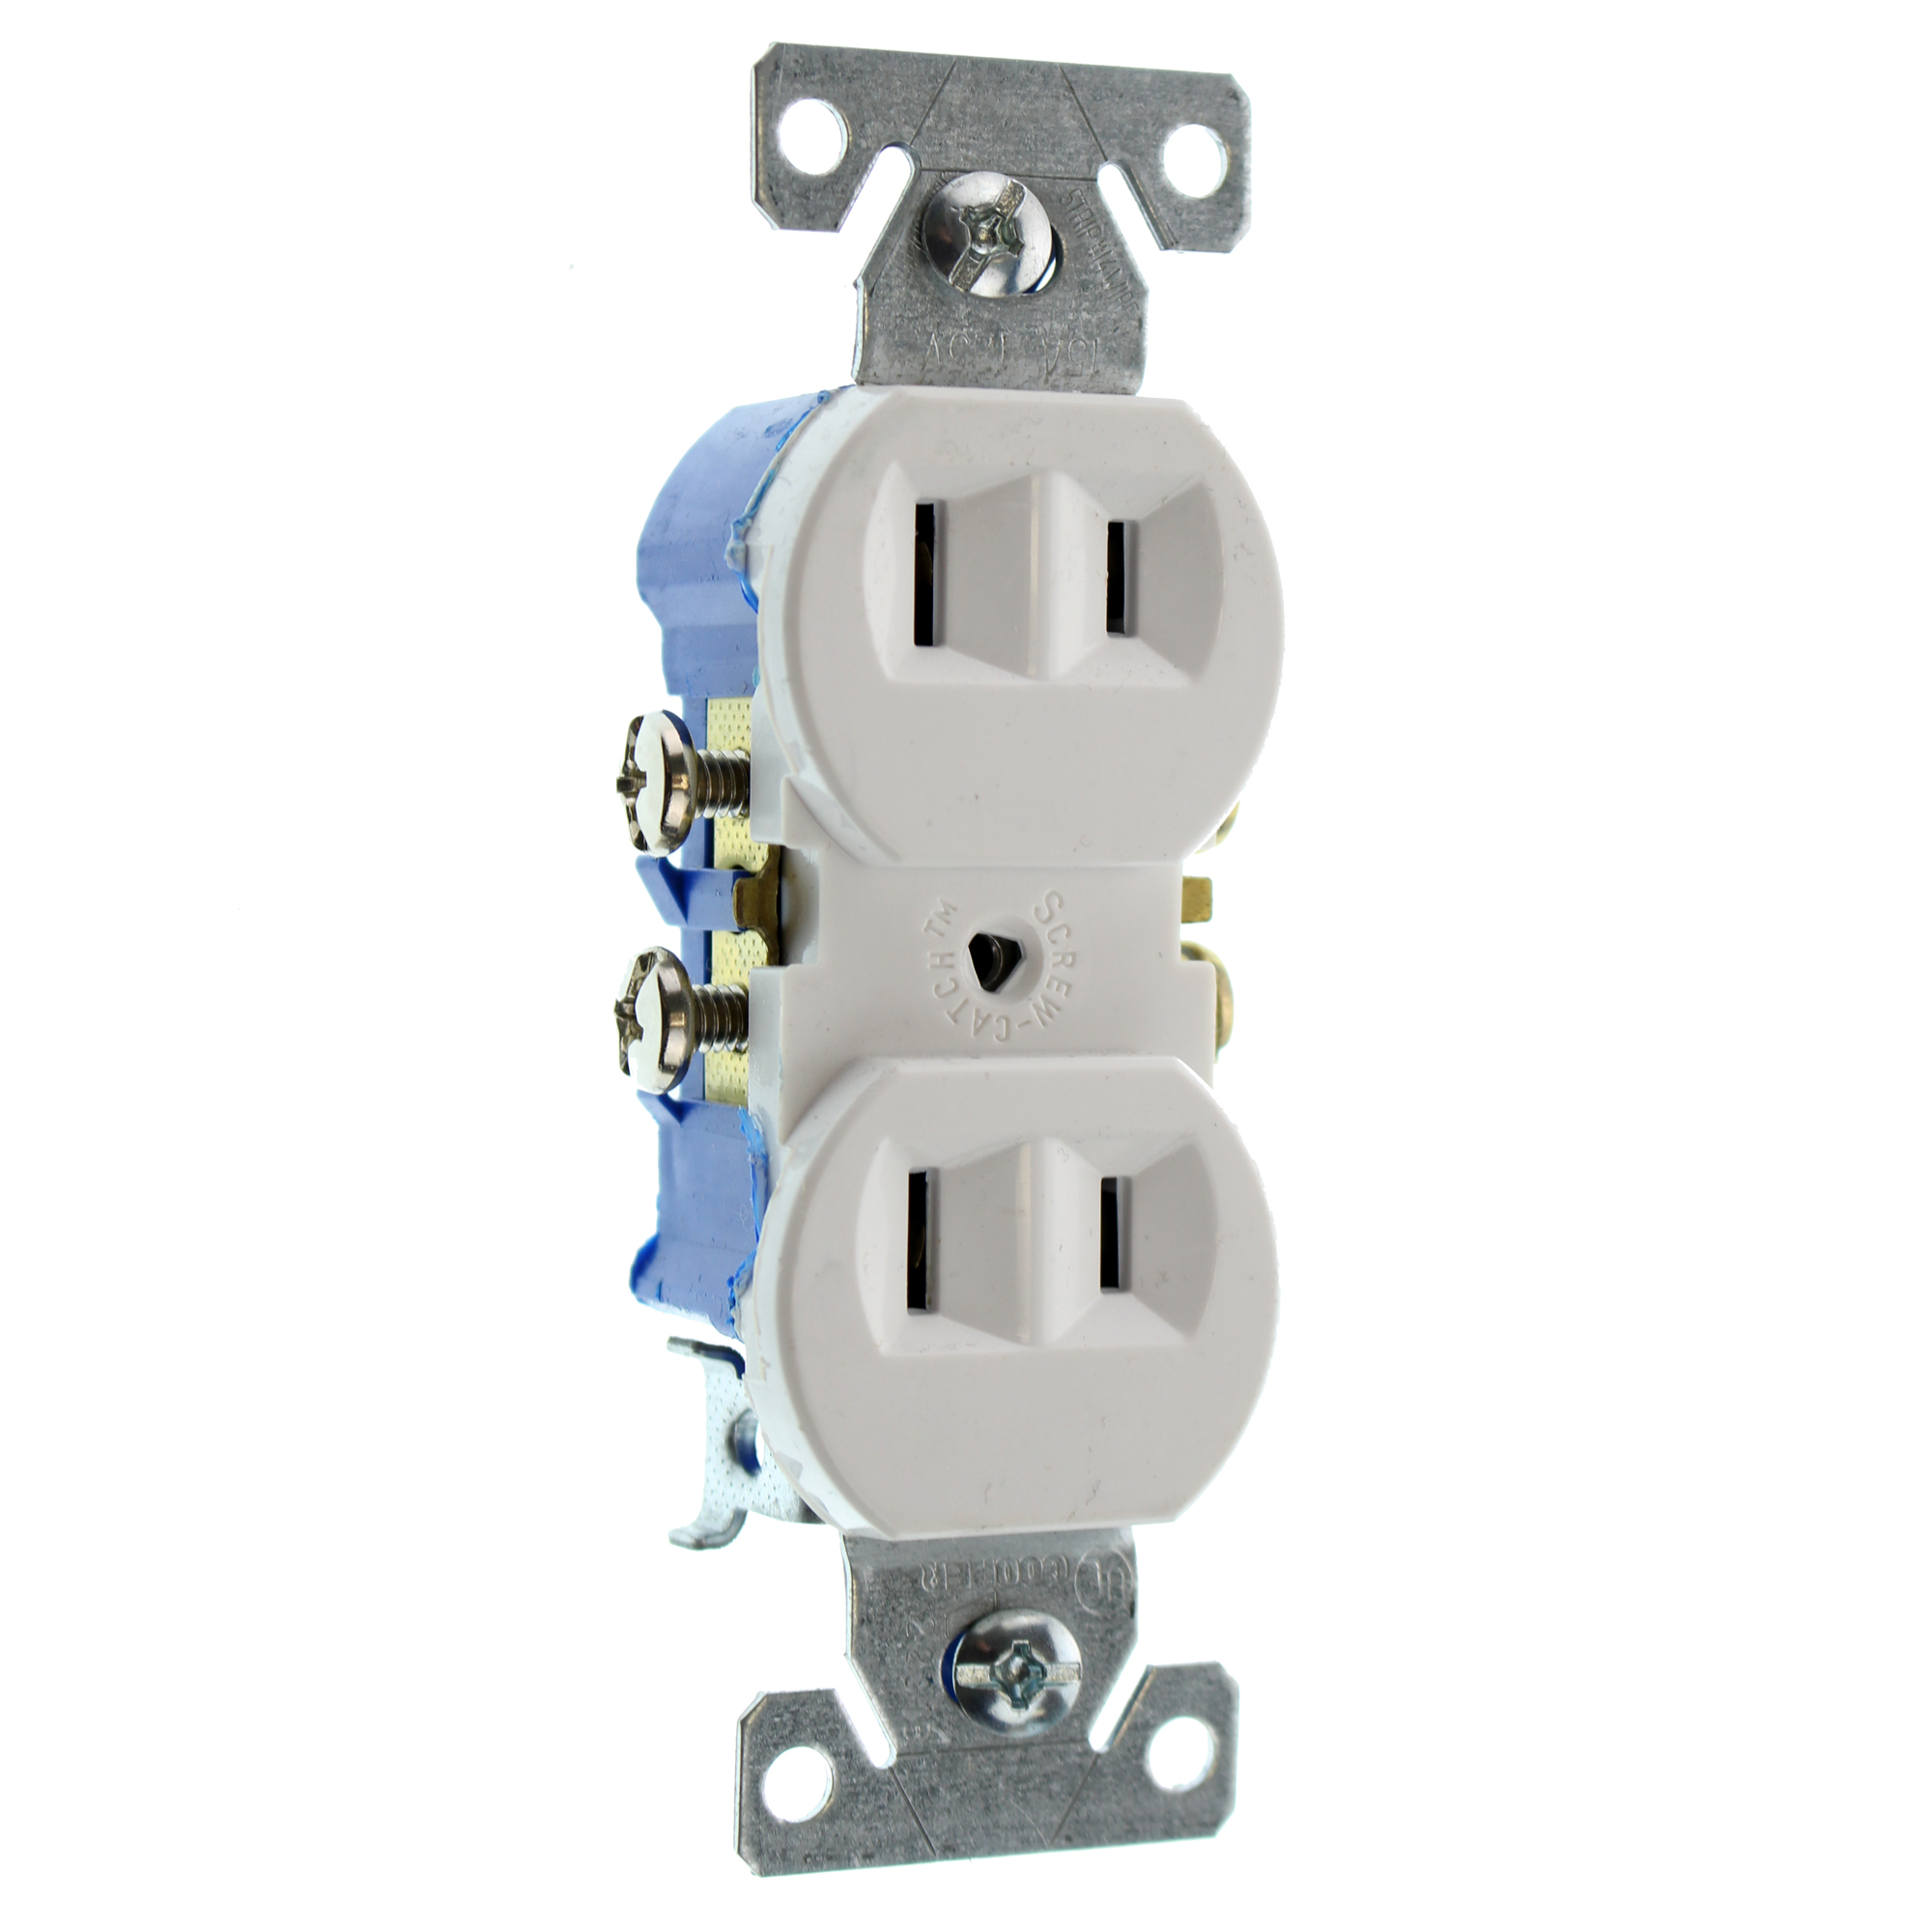 EATON COOPER 736W-SP-L RECETPACLE OUTLET, NON-GROUNDING, 2-WIRE, 15A ...